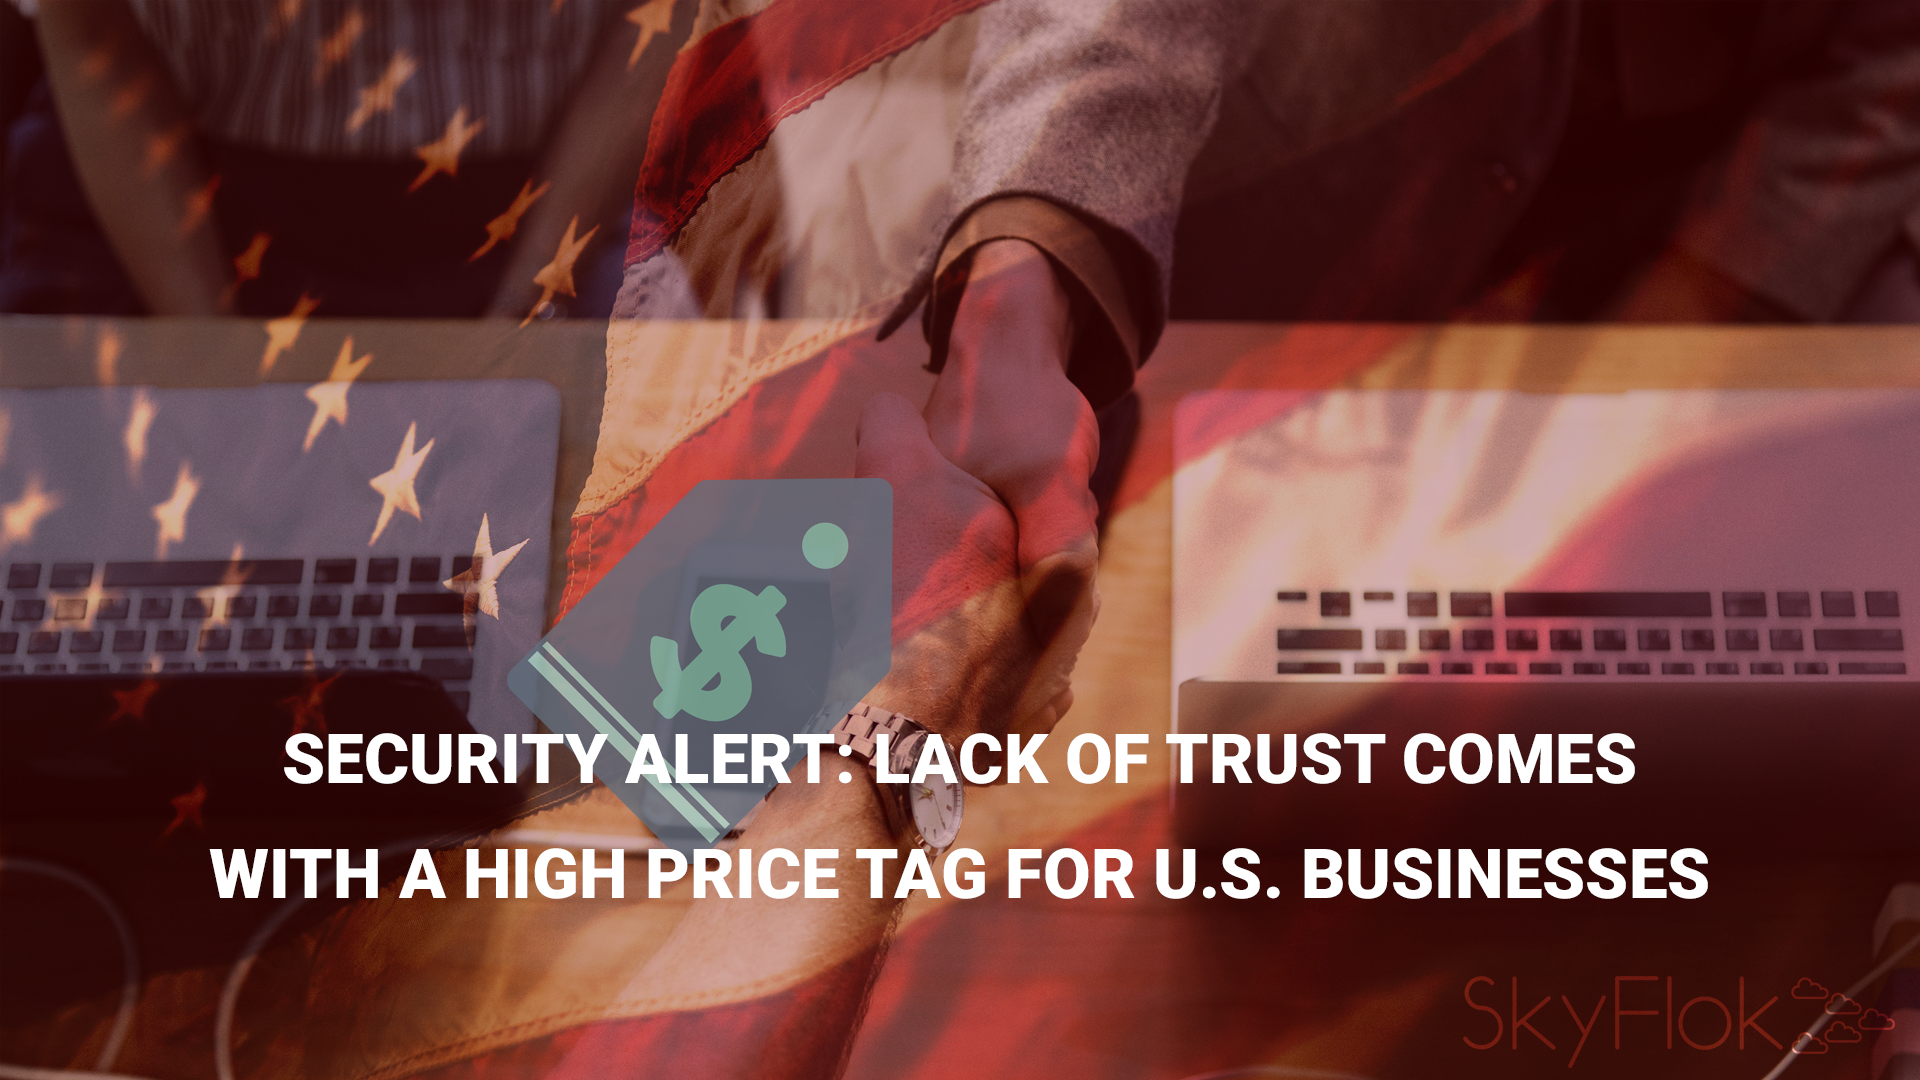 Security Alert: Lack of Trust Comes with a High Price Tag for U.S. Businesses